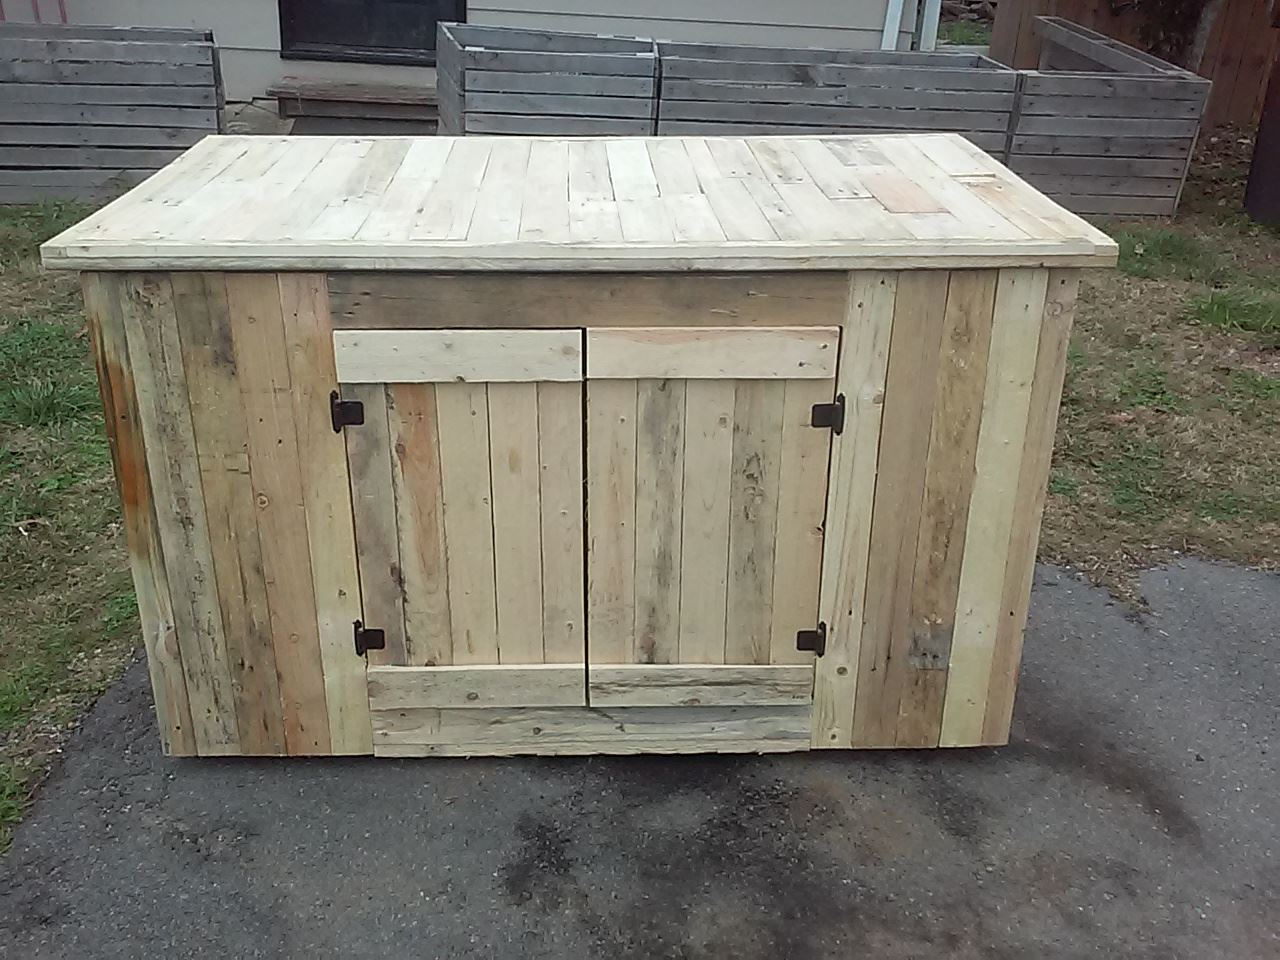 Kitchen Cabinets From Pallets kitchen cabinets built out of pallets | nrtradiant